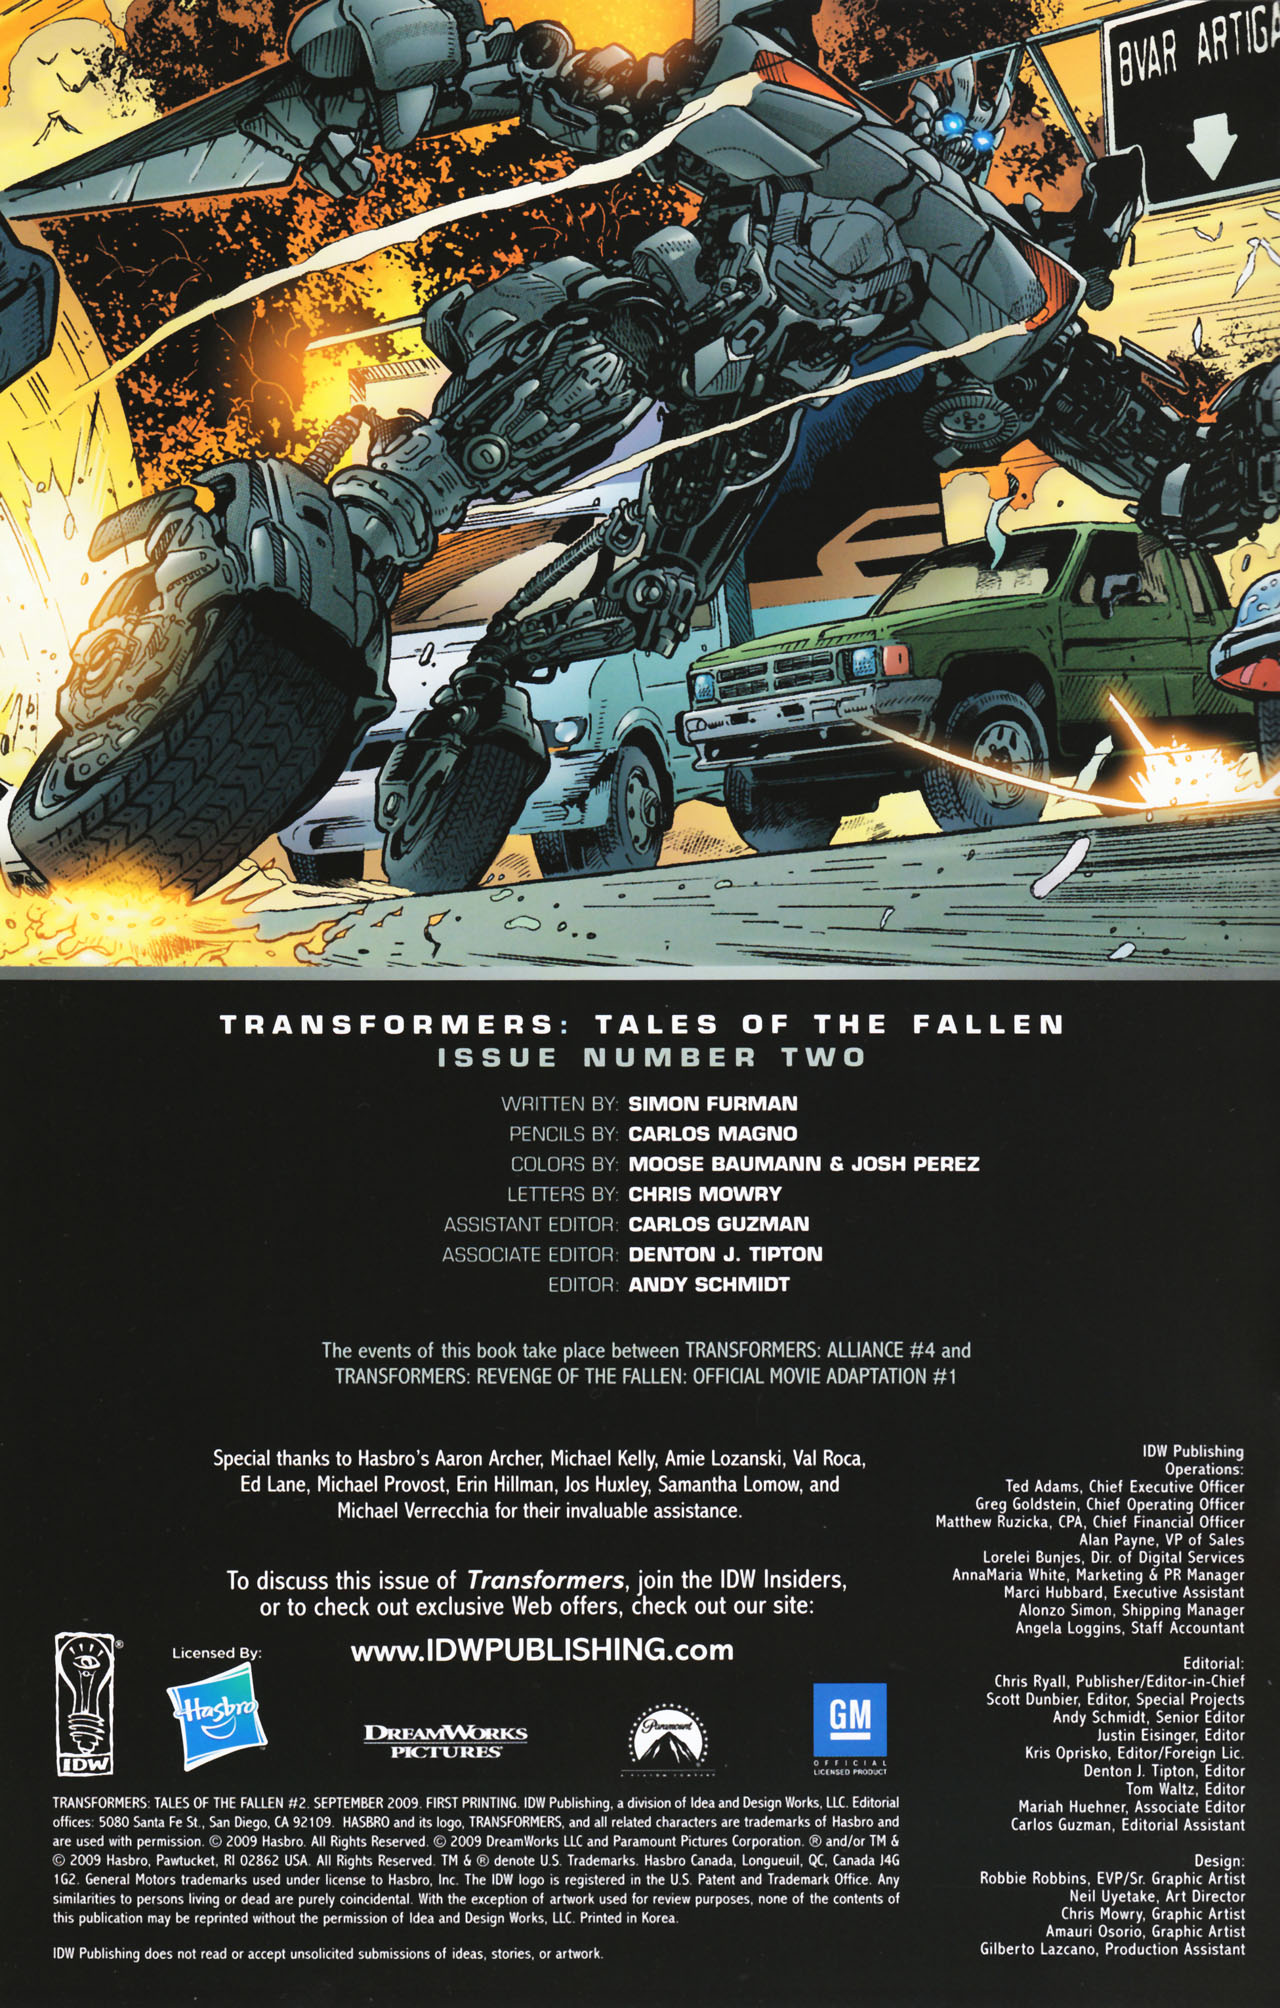 Read online Transformers: Tales of The Fallen comic -  Issue #2 - 2